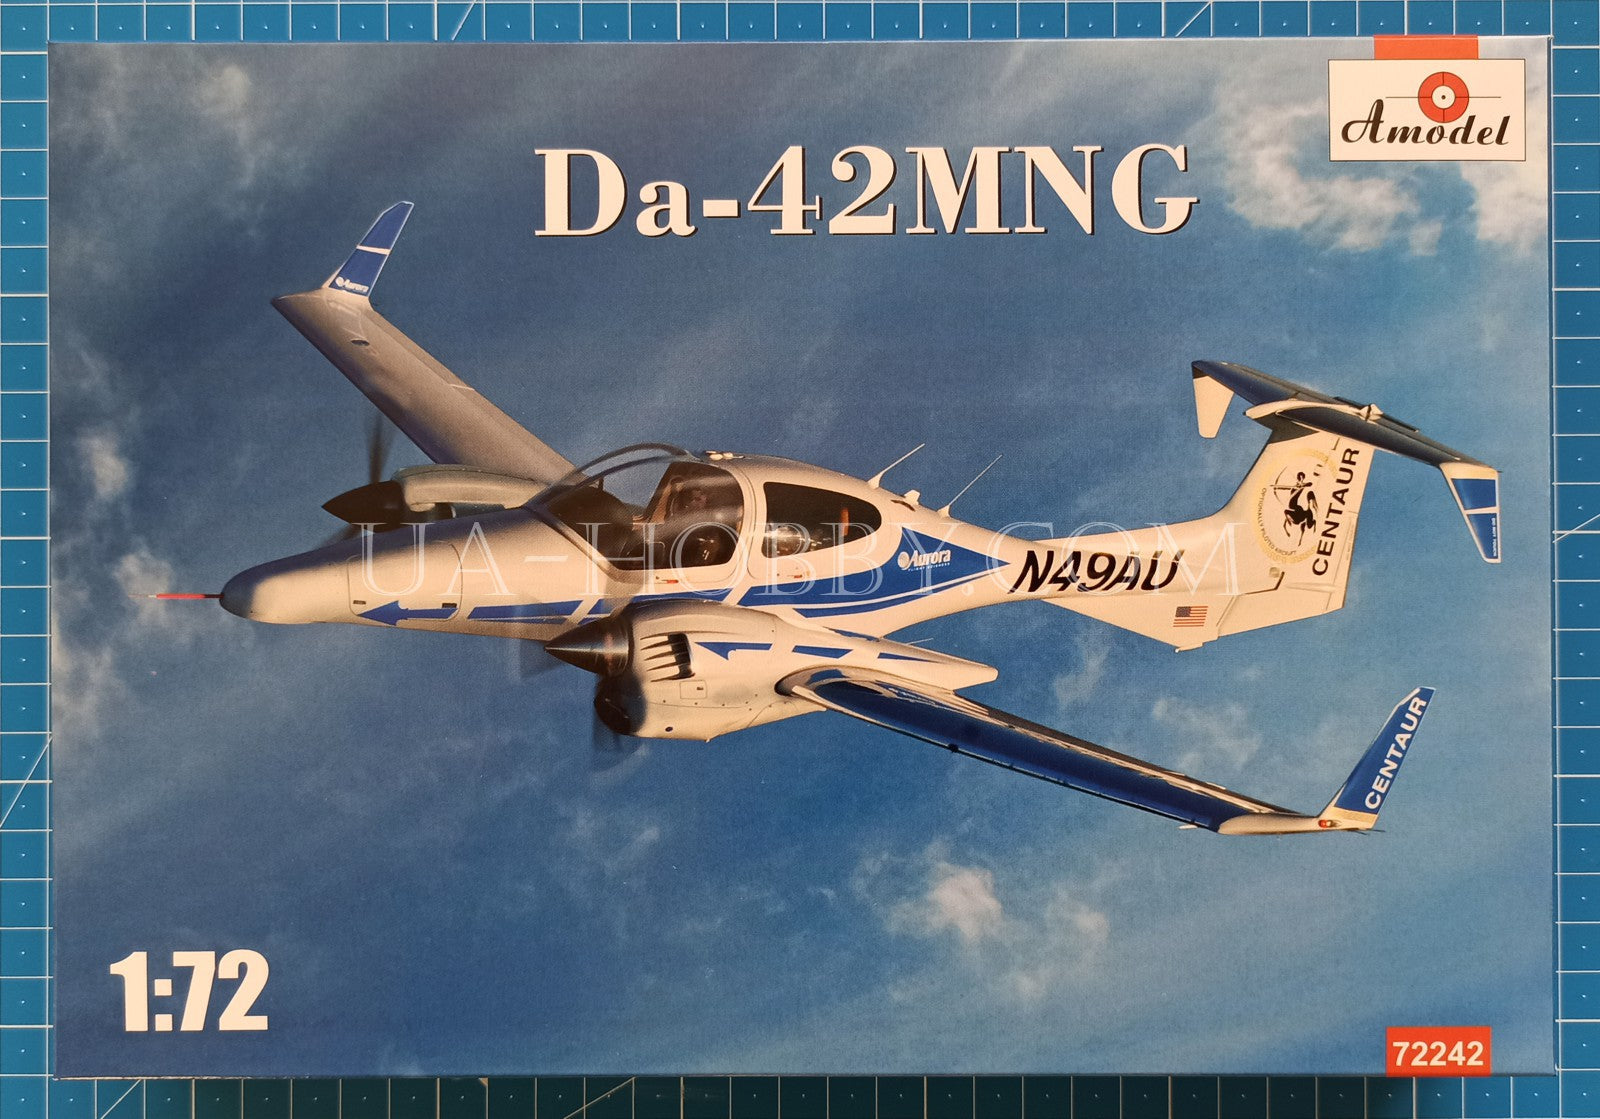 1/72 Diamond Da-42MNG. Amodel 72242